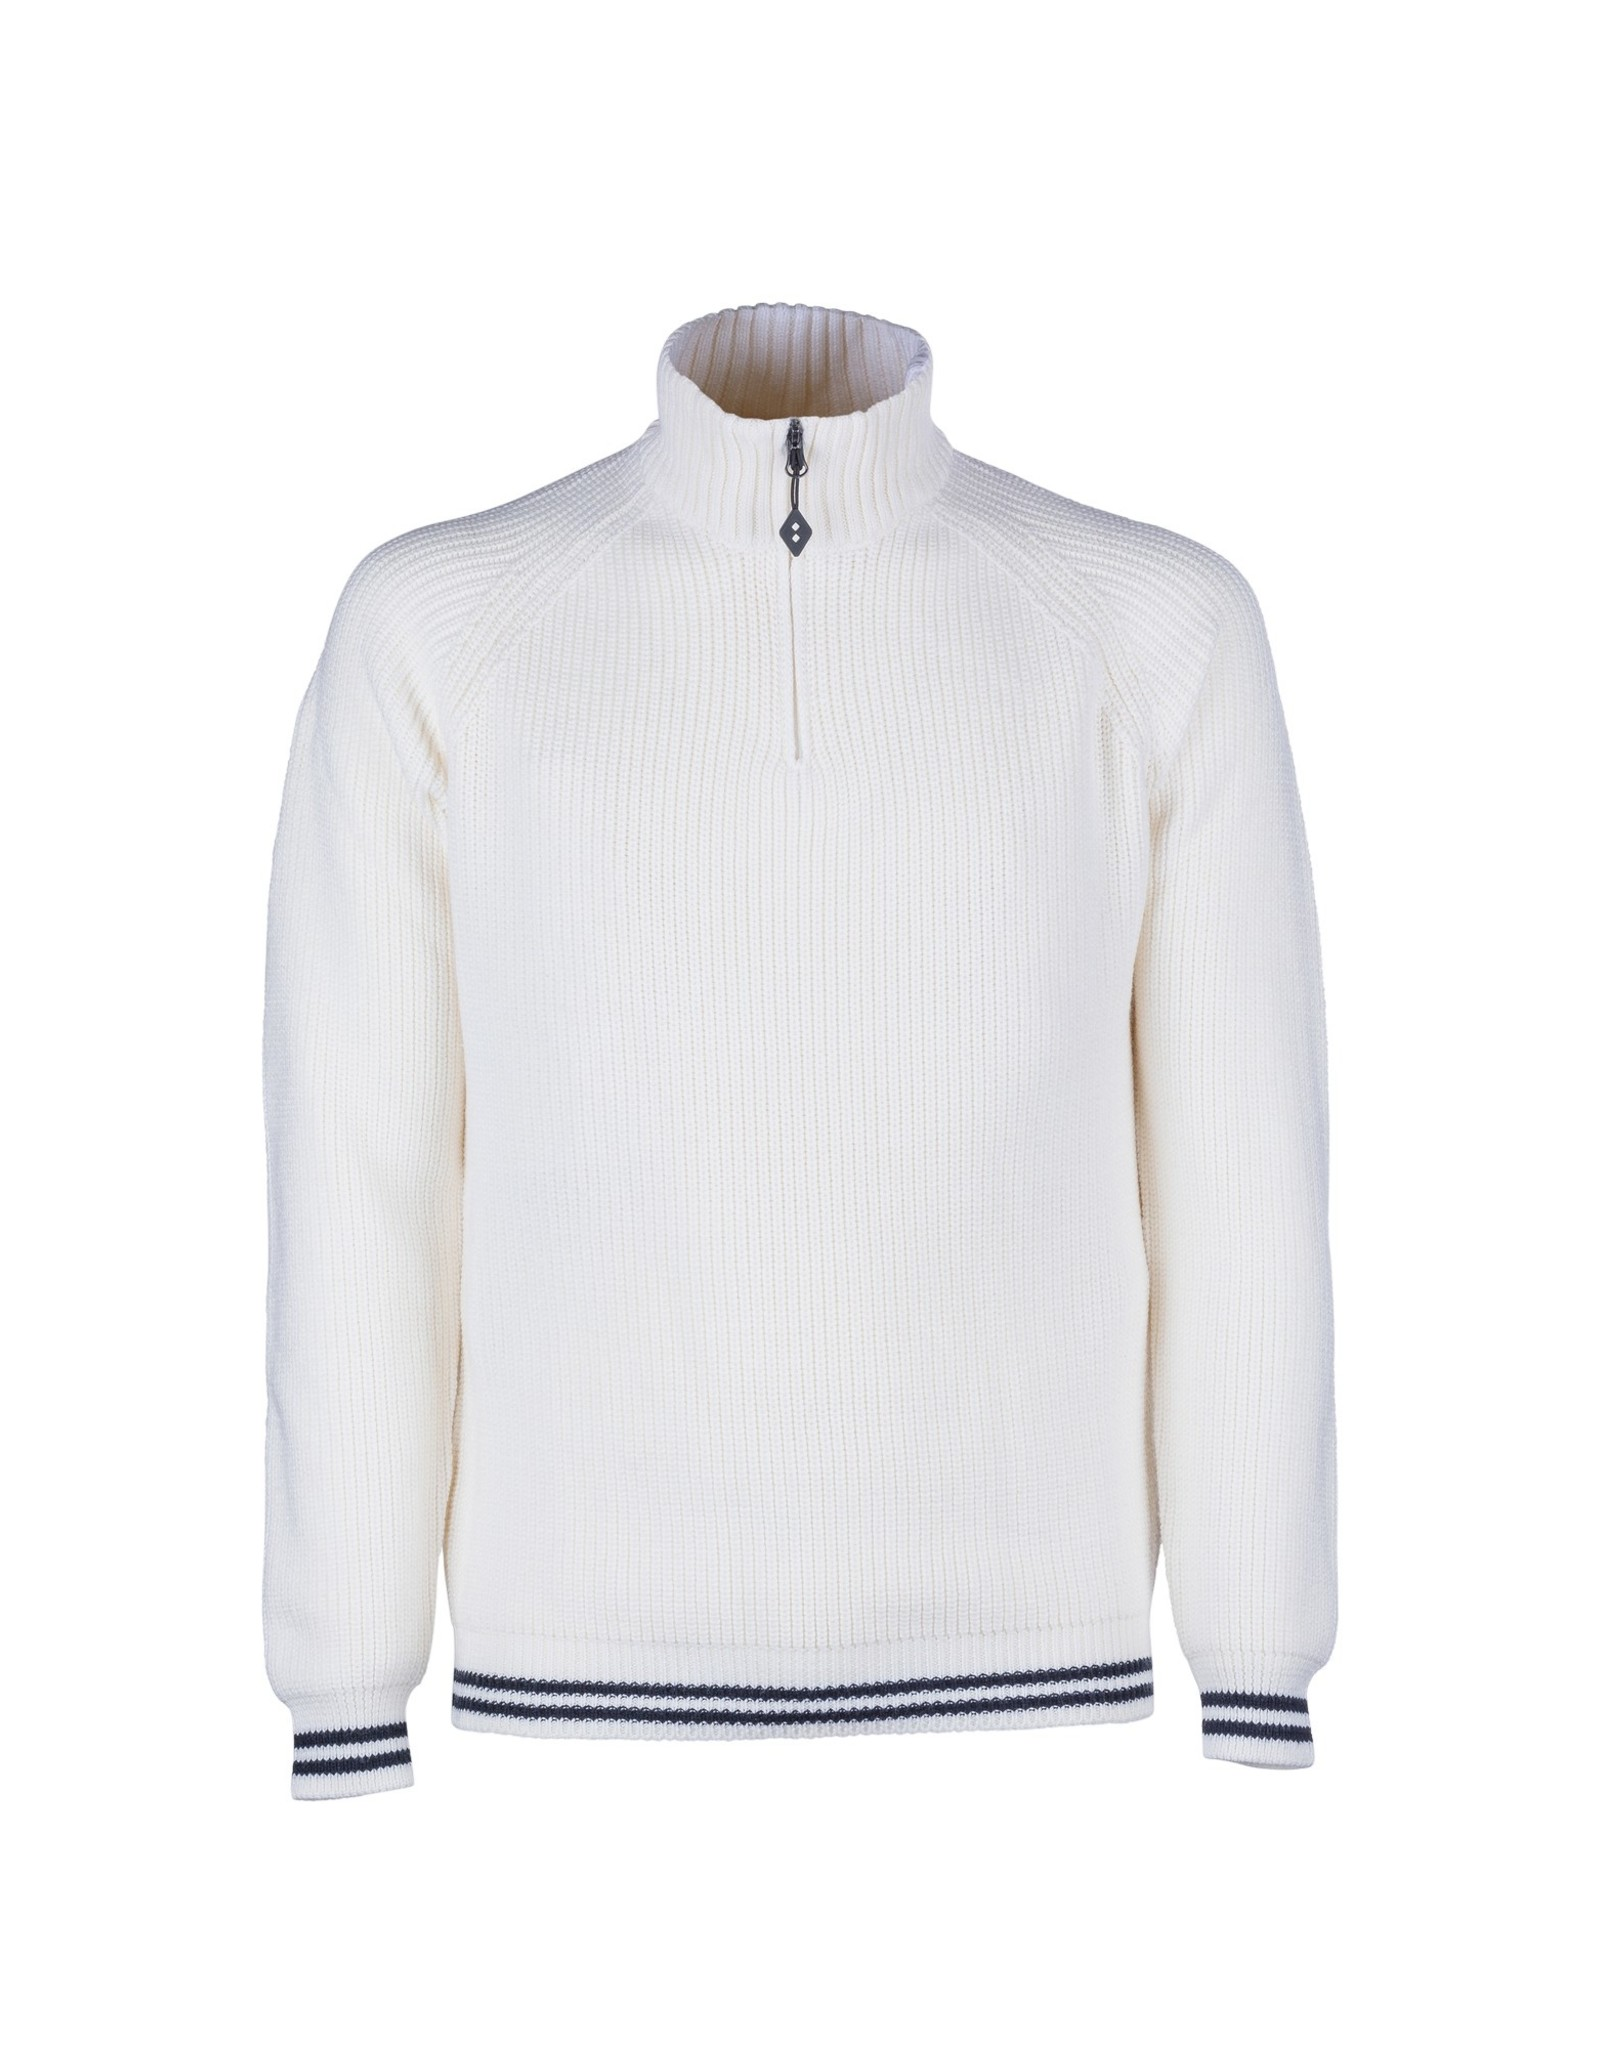 Slam Jumper D56 - Sail White ( A01 )